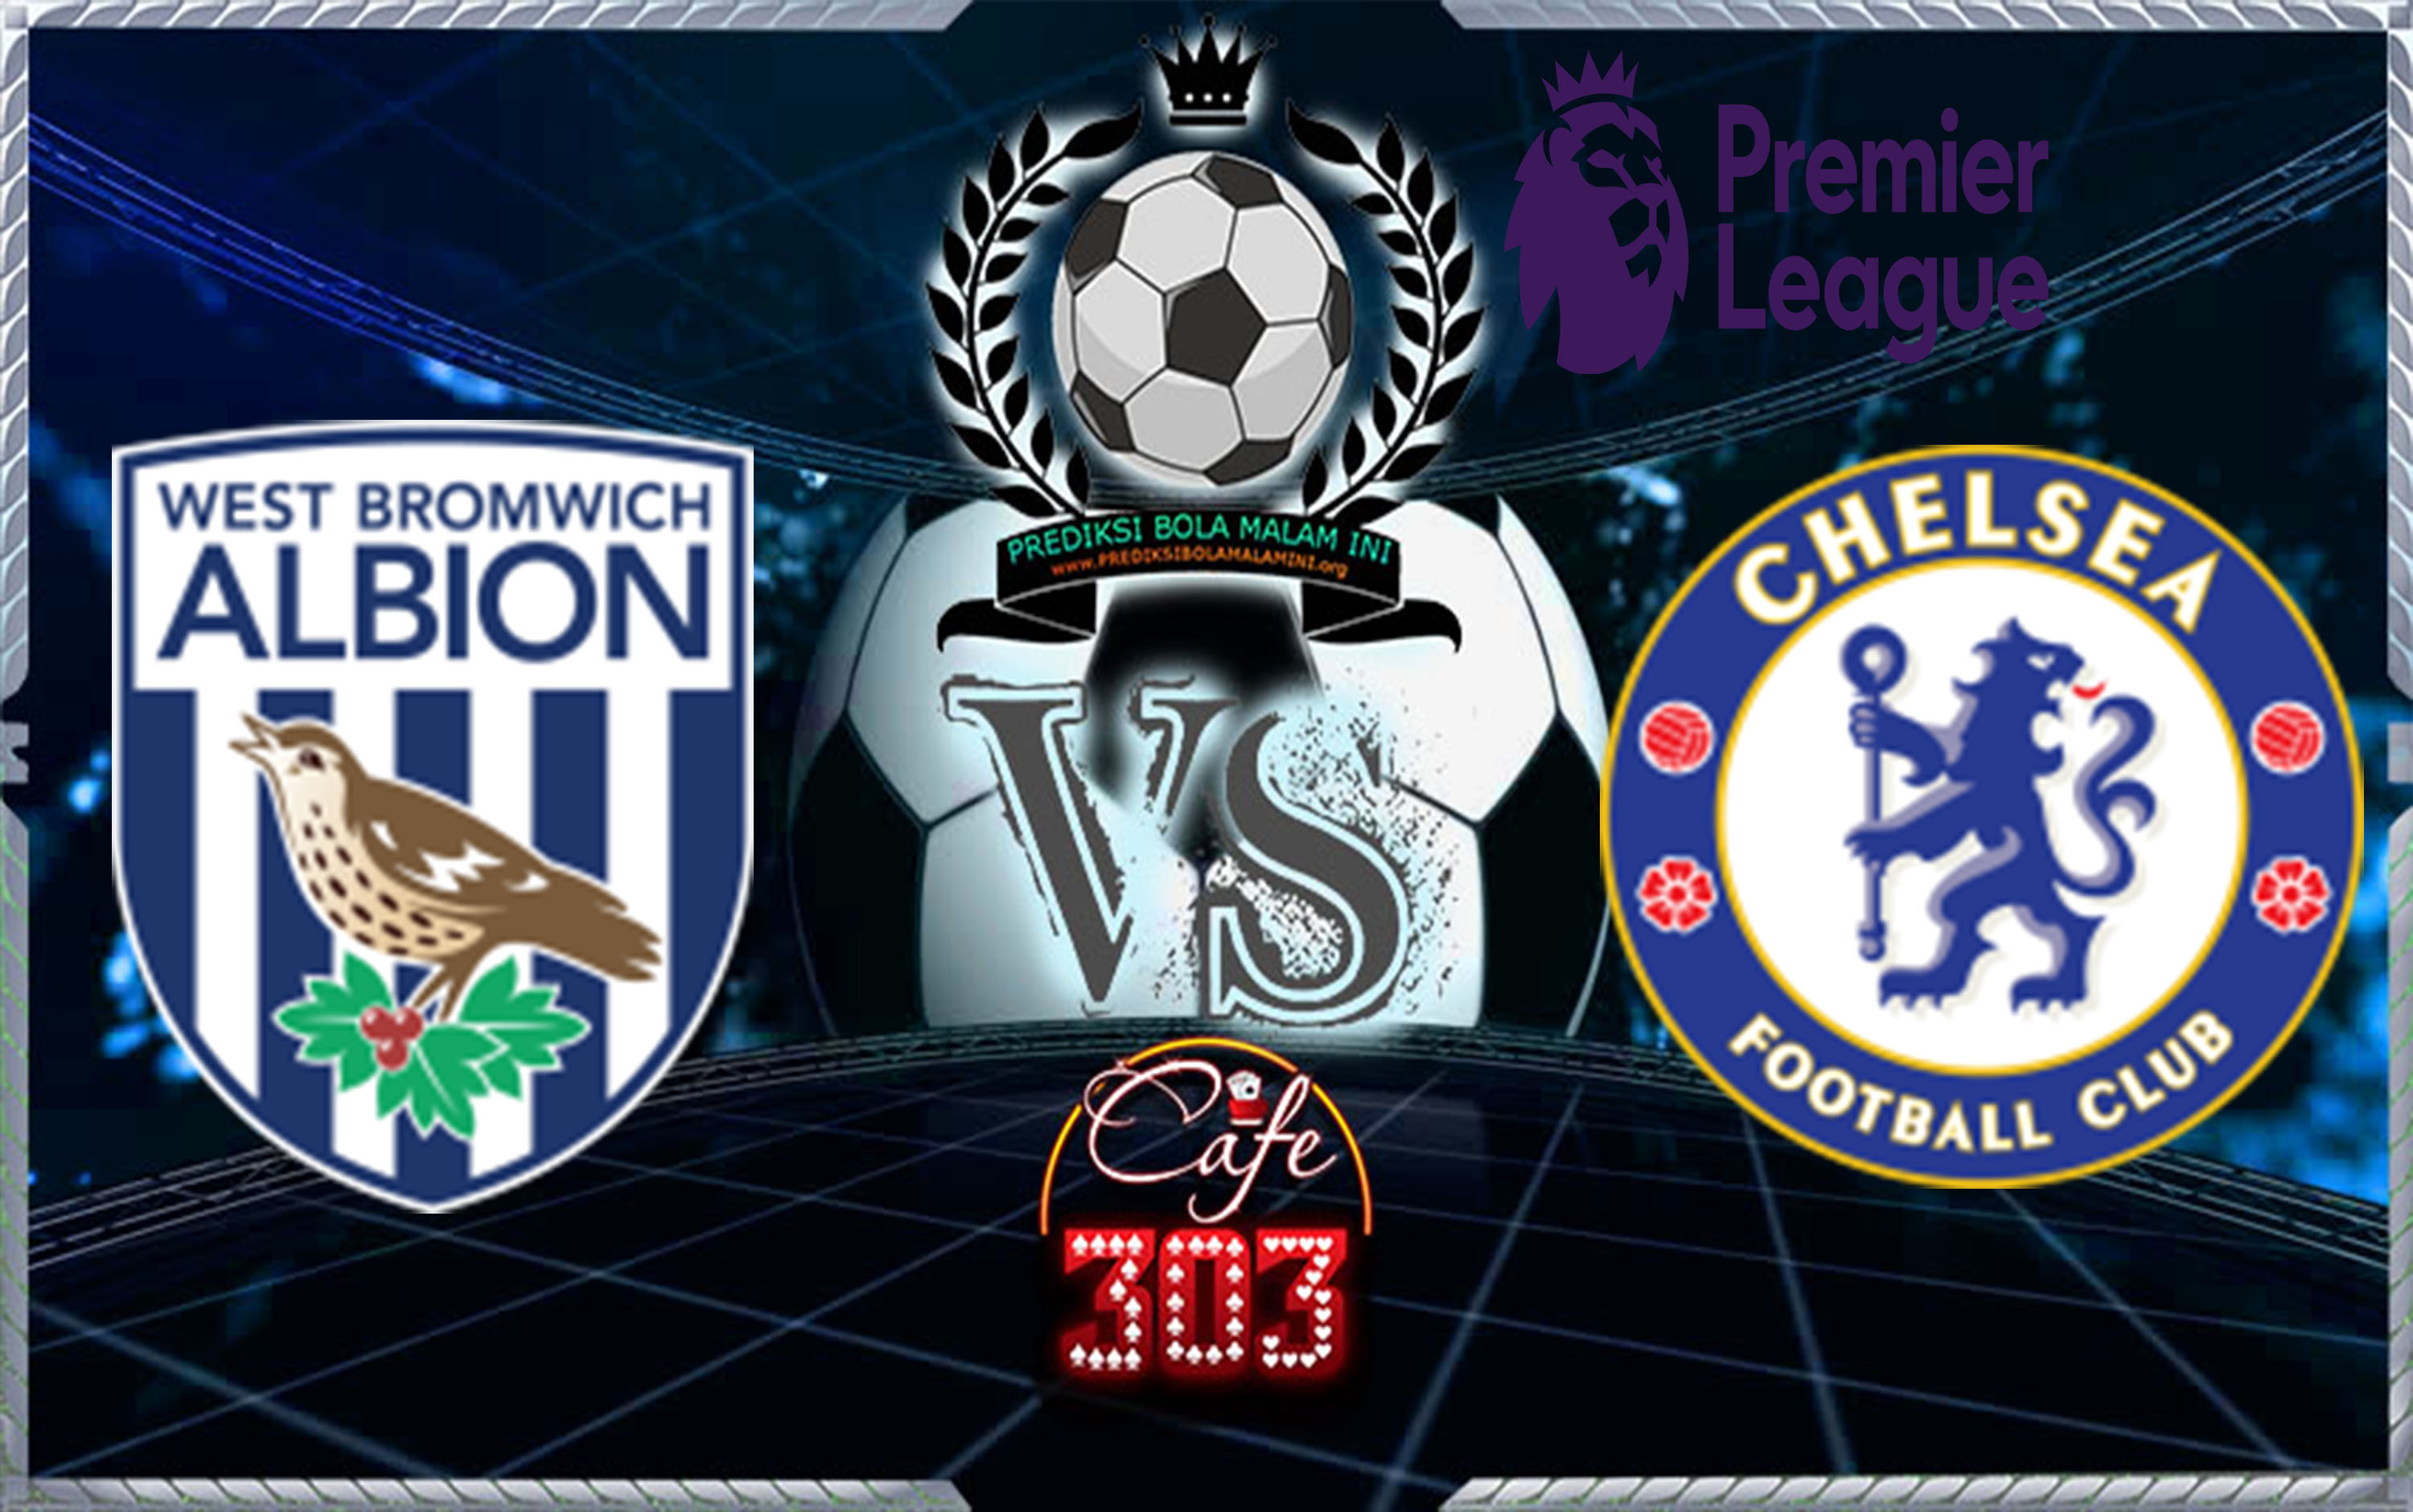 "Editor Scor BARAT BROMWICH ALBION Vs CHELSEA 18 November 2017 ""width ="" 640 ""height ="" 401 ""/> </p> <p> <span style="